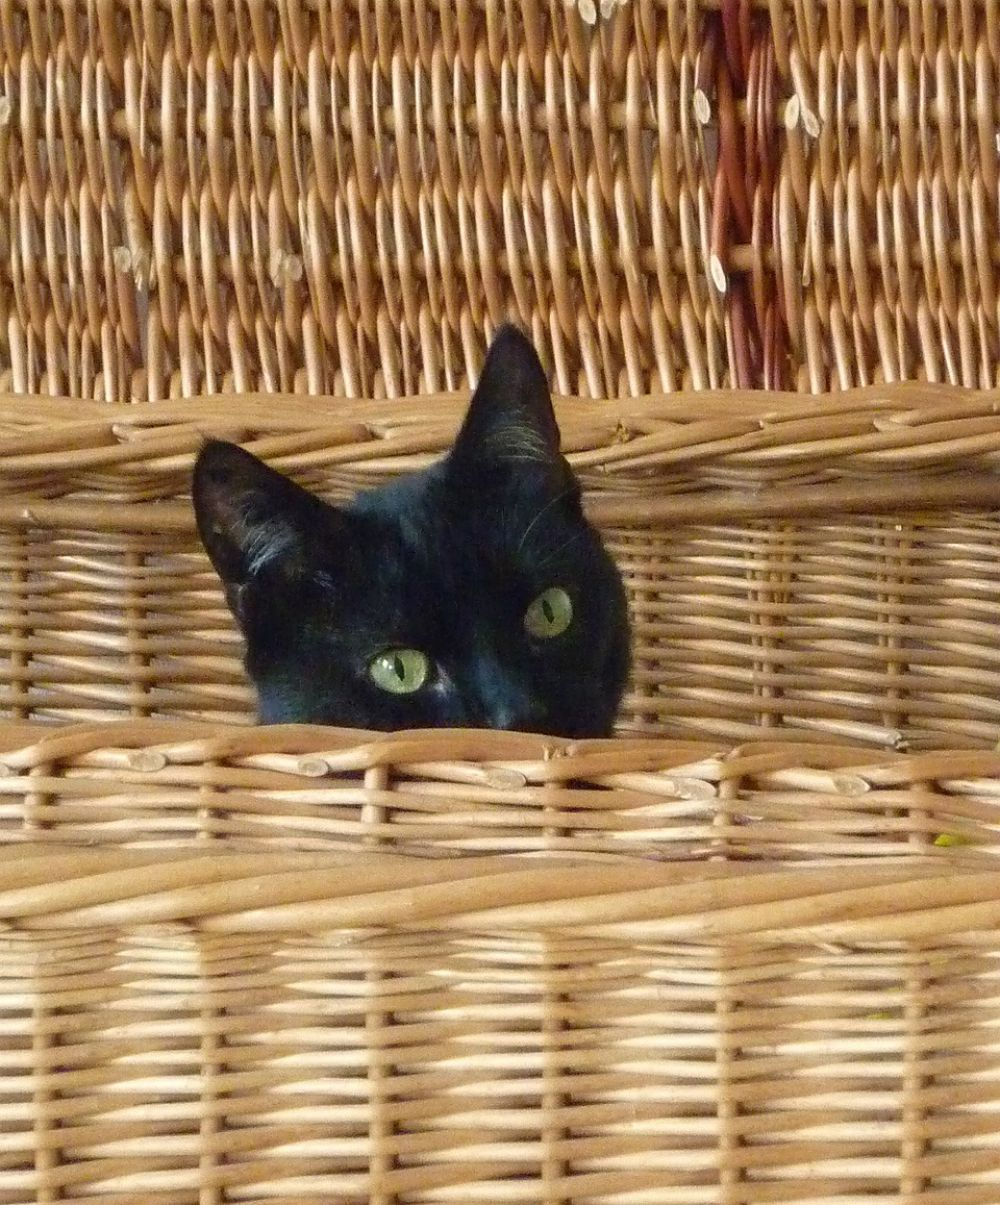 Black cat in basket, waiting for adoption